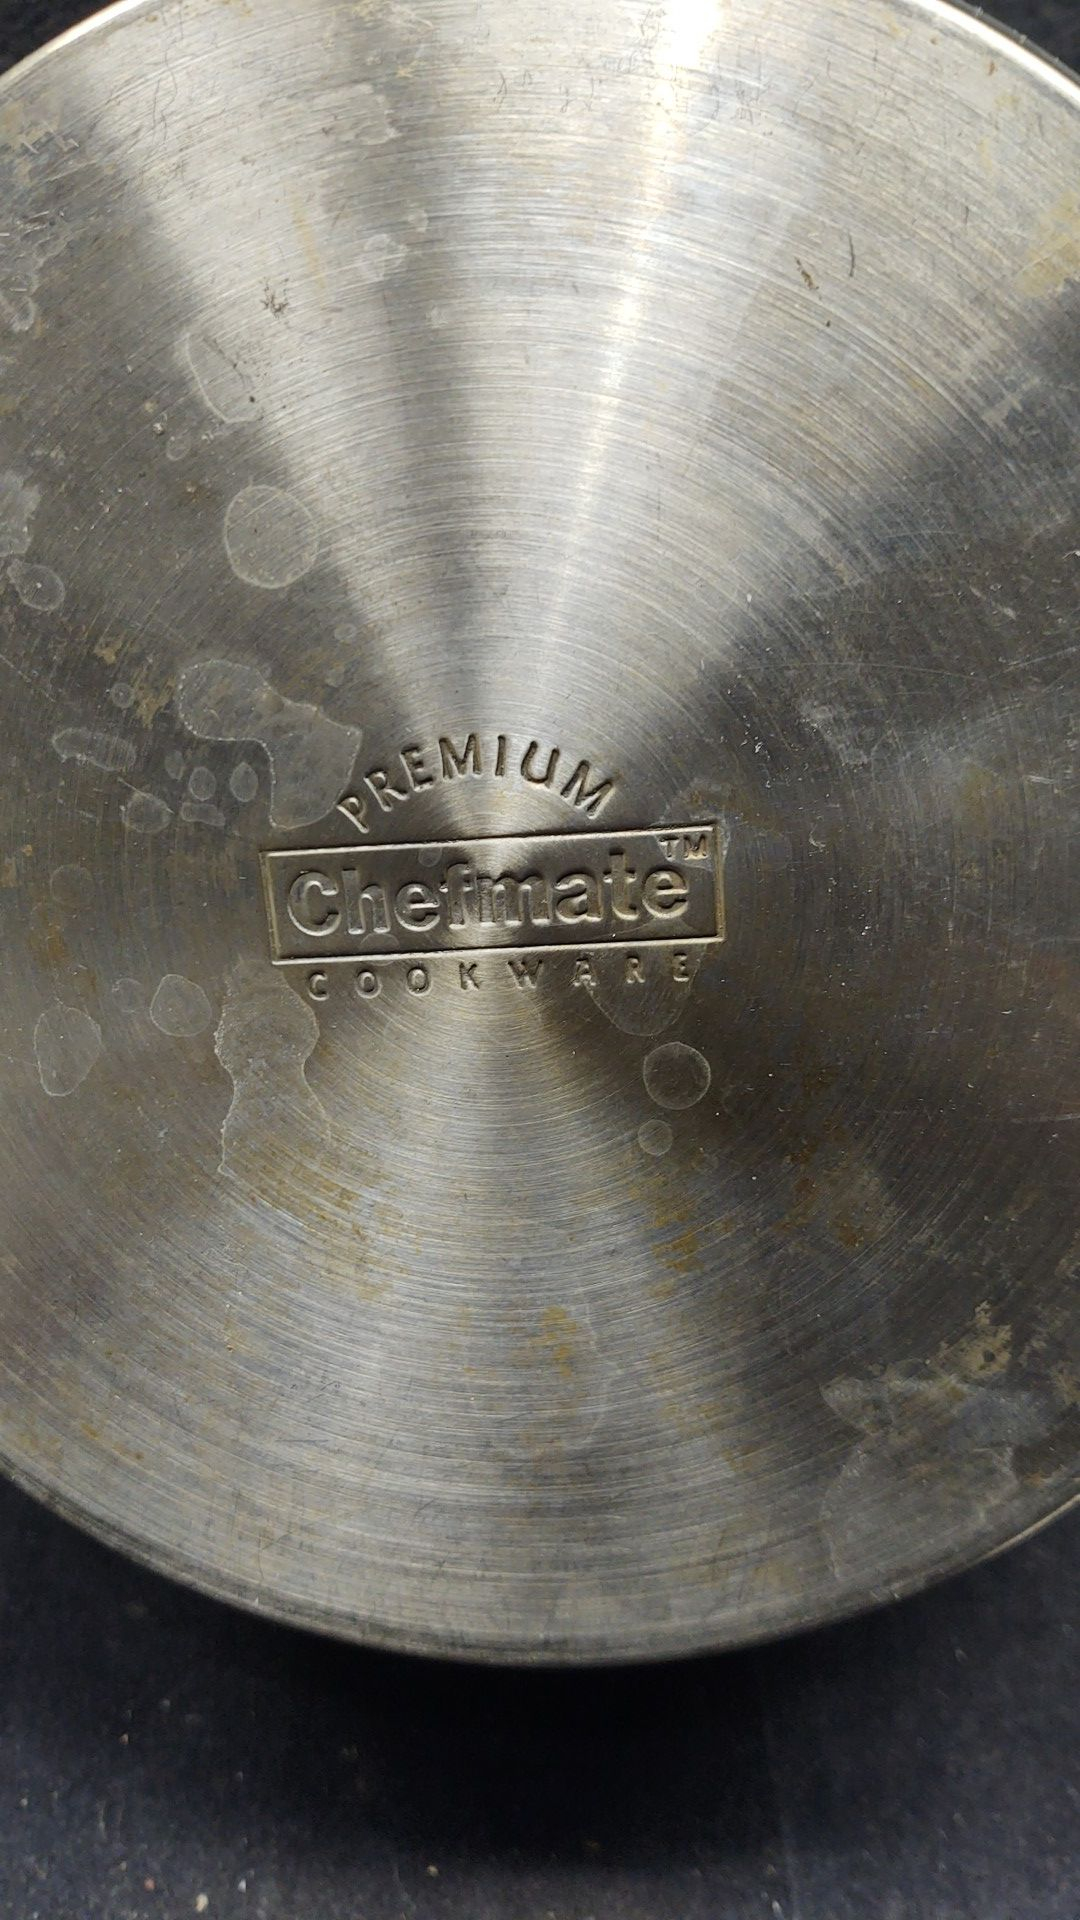 """Checkmate Premium Cookware 8"""" Stainless Steel Sauce Pot"""